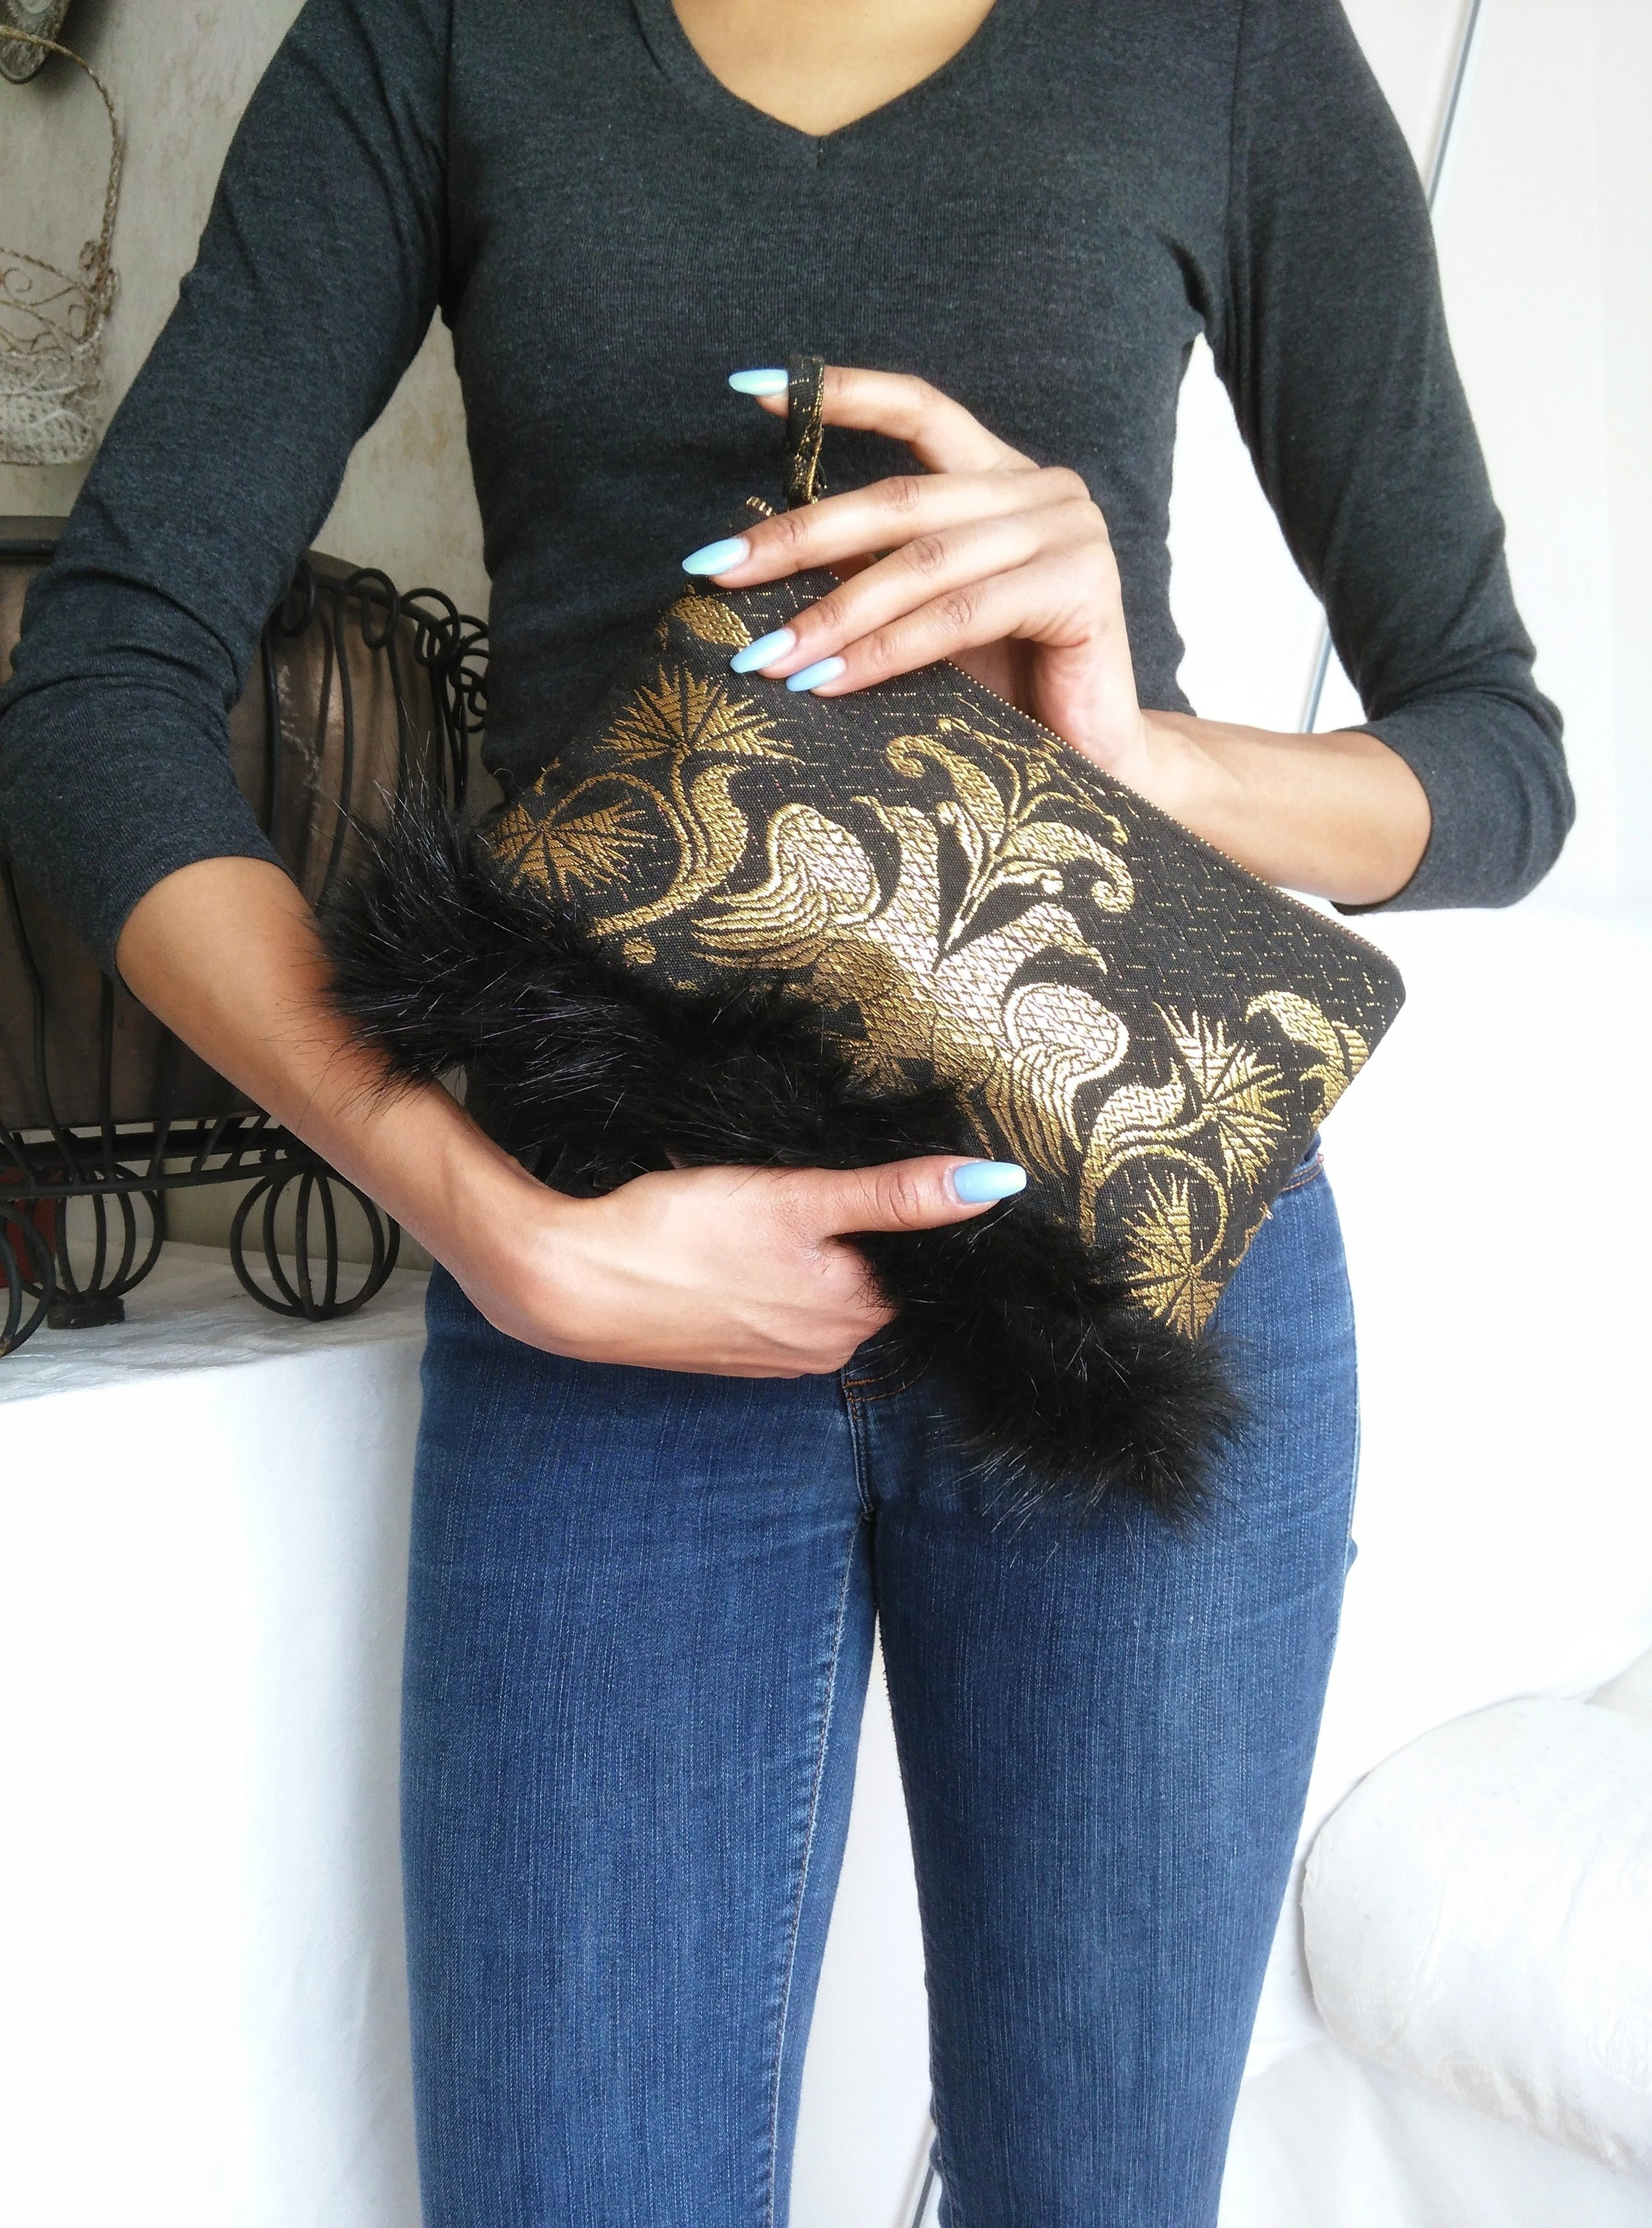 Fur Trimmed Clutch - Make your statement one-of-a-kind easy clutch